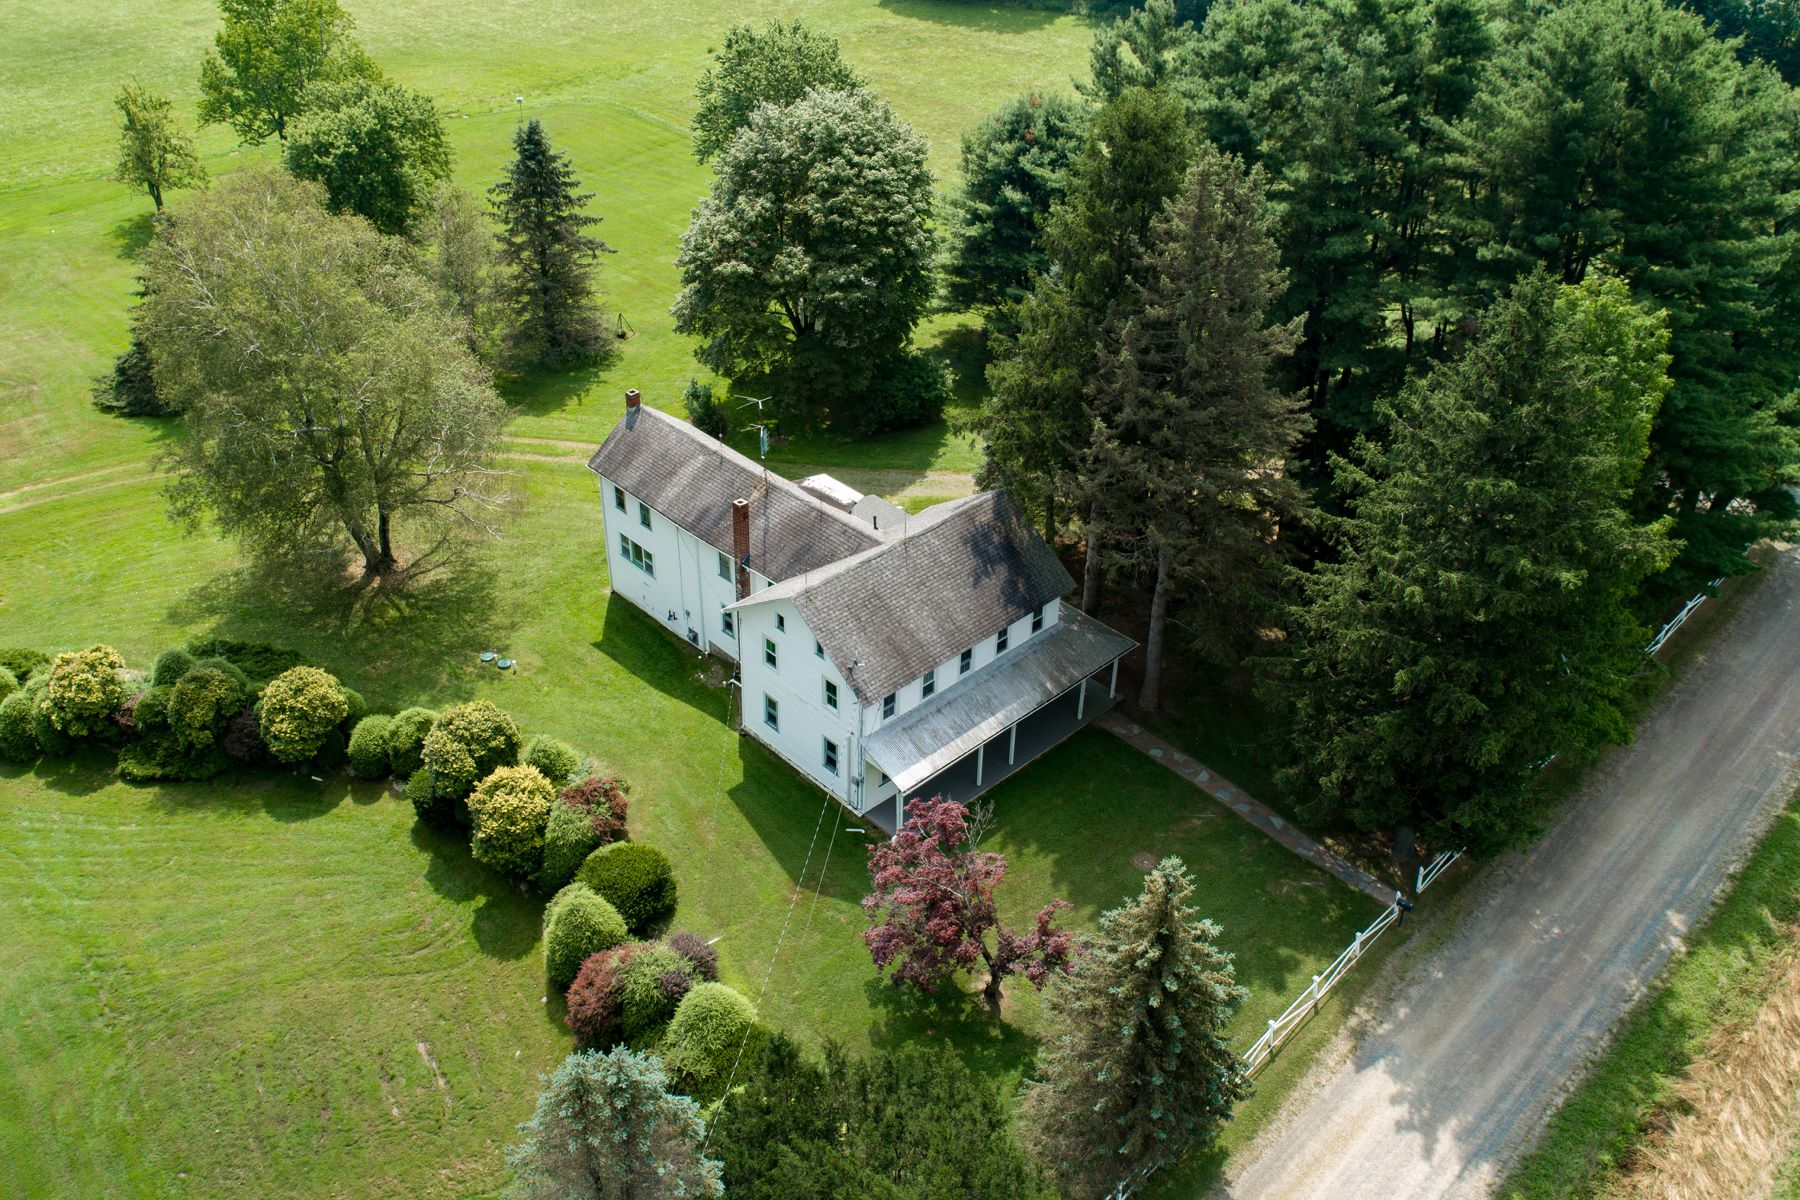 Single Family Homes for Sale at Residential in GREENTOWN, PA Greentown, Pennsylvania 18426 United States